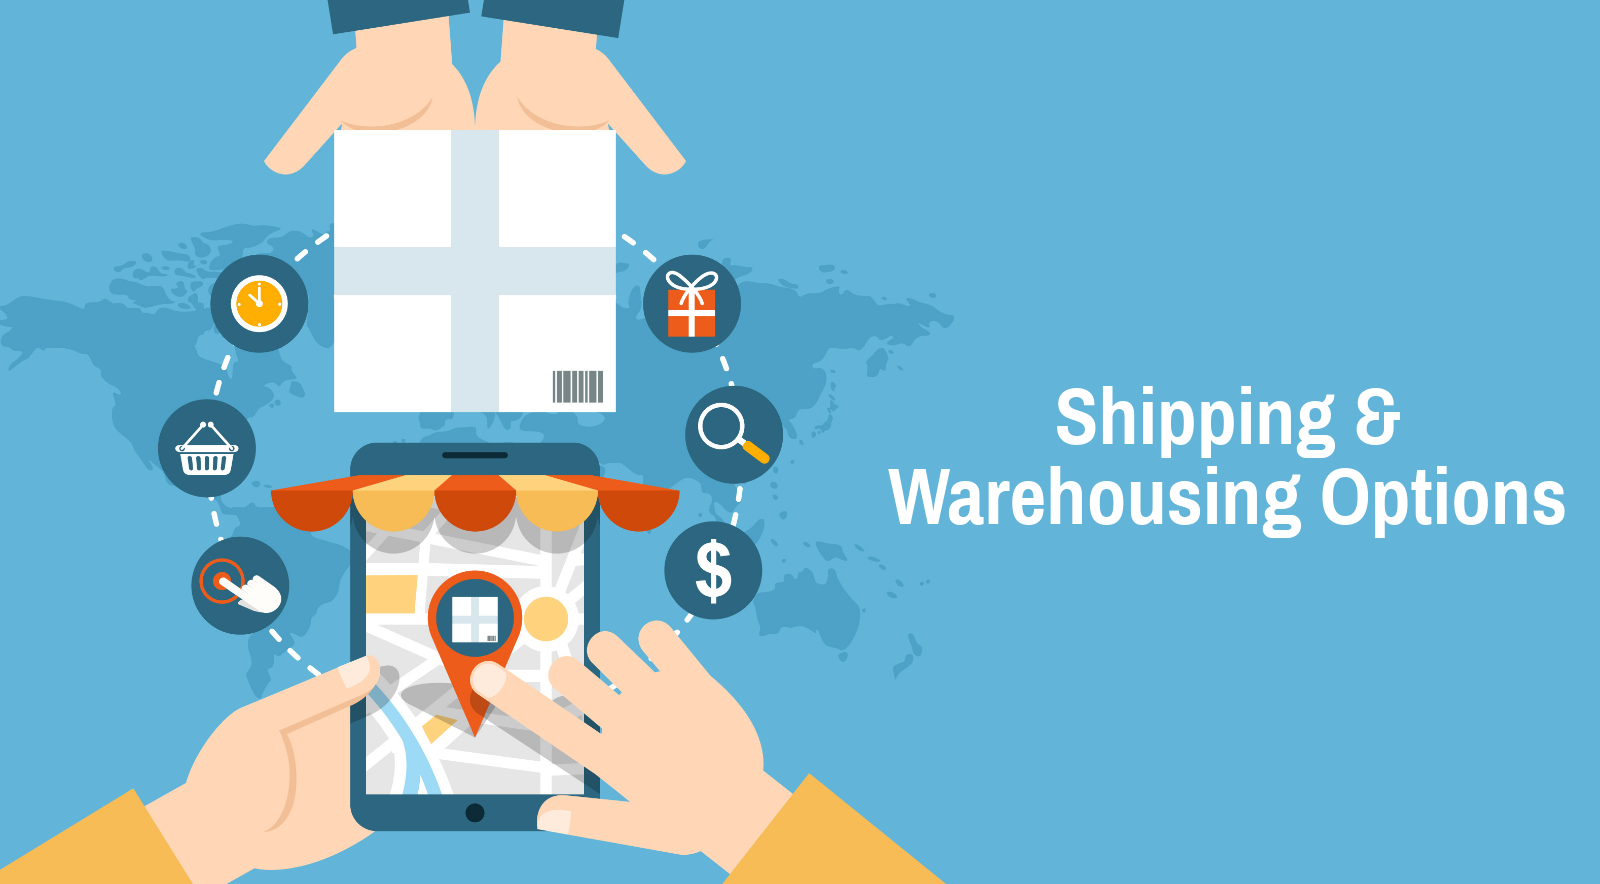 Shipping & Warehousing Options